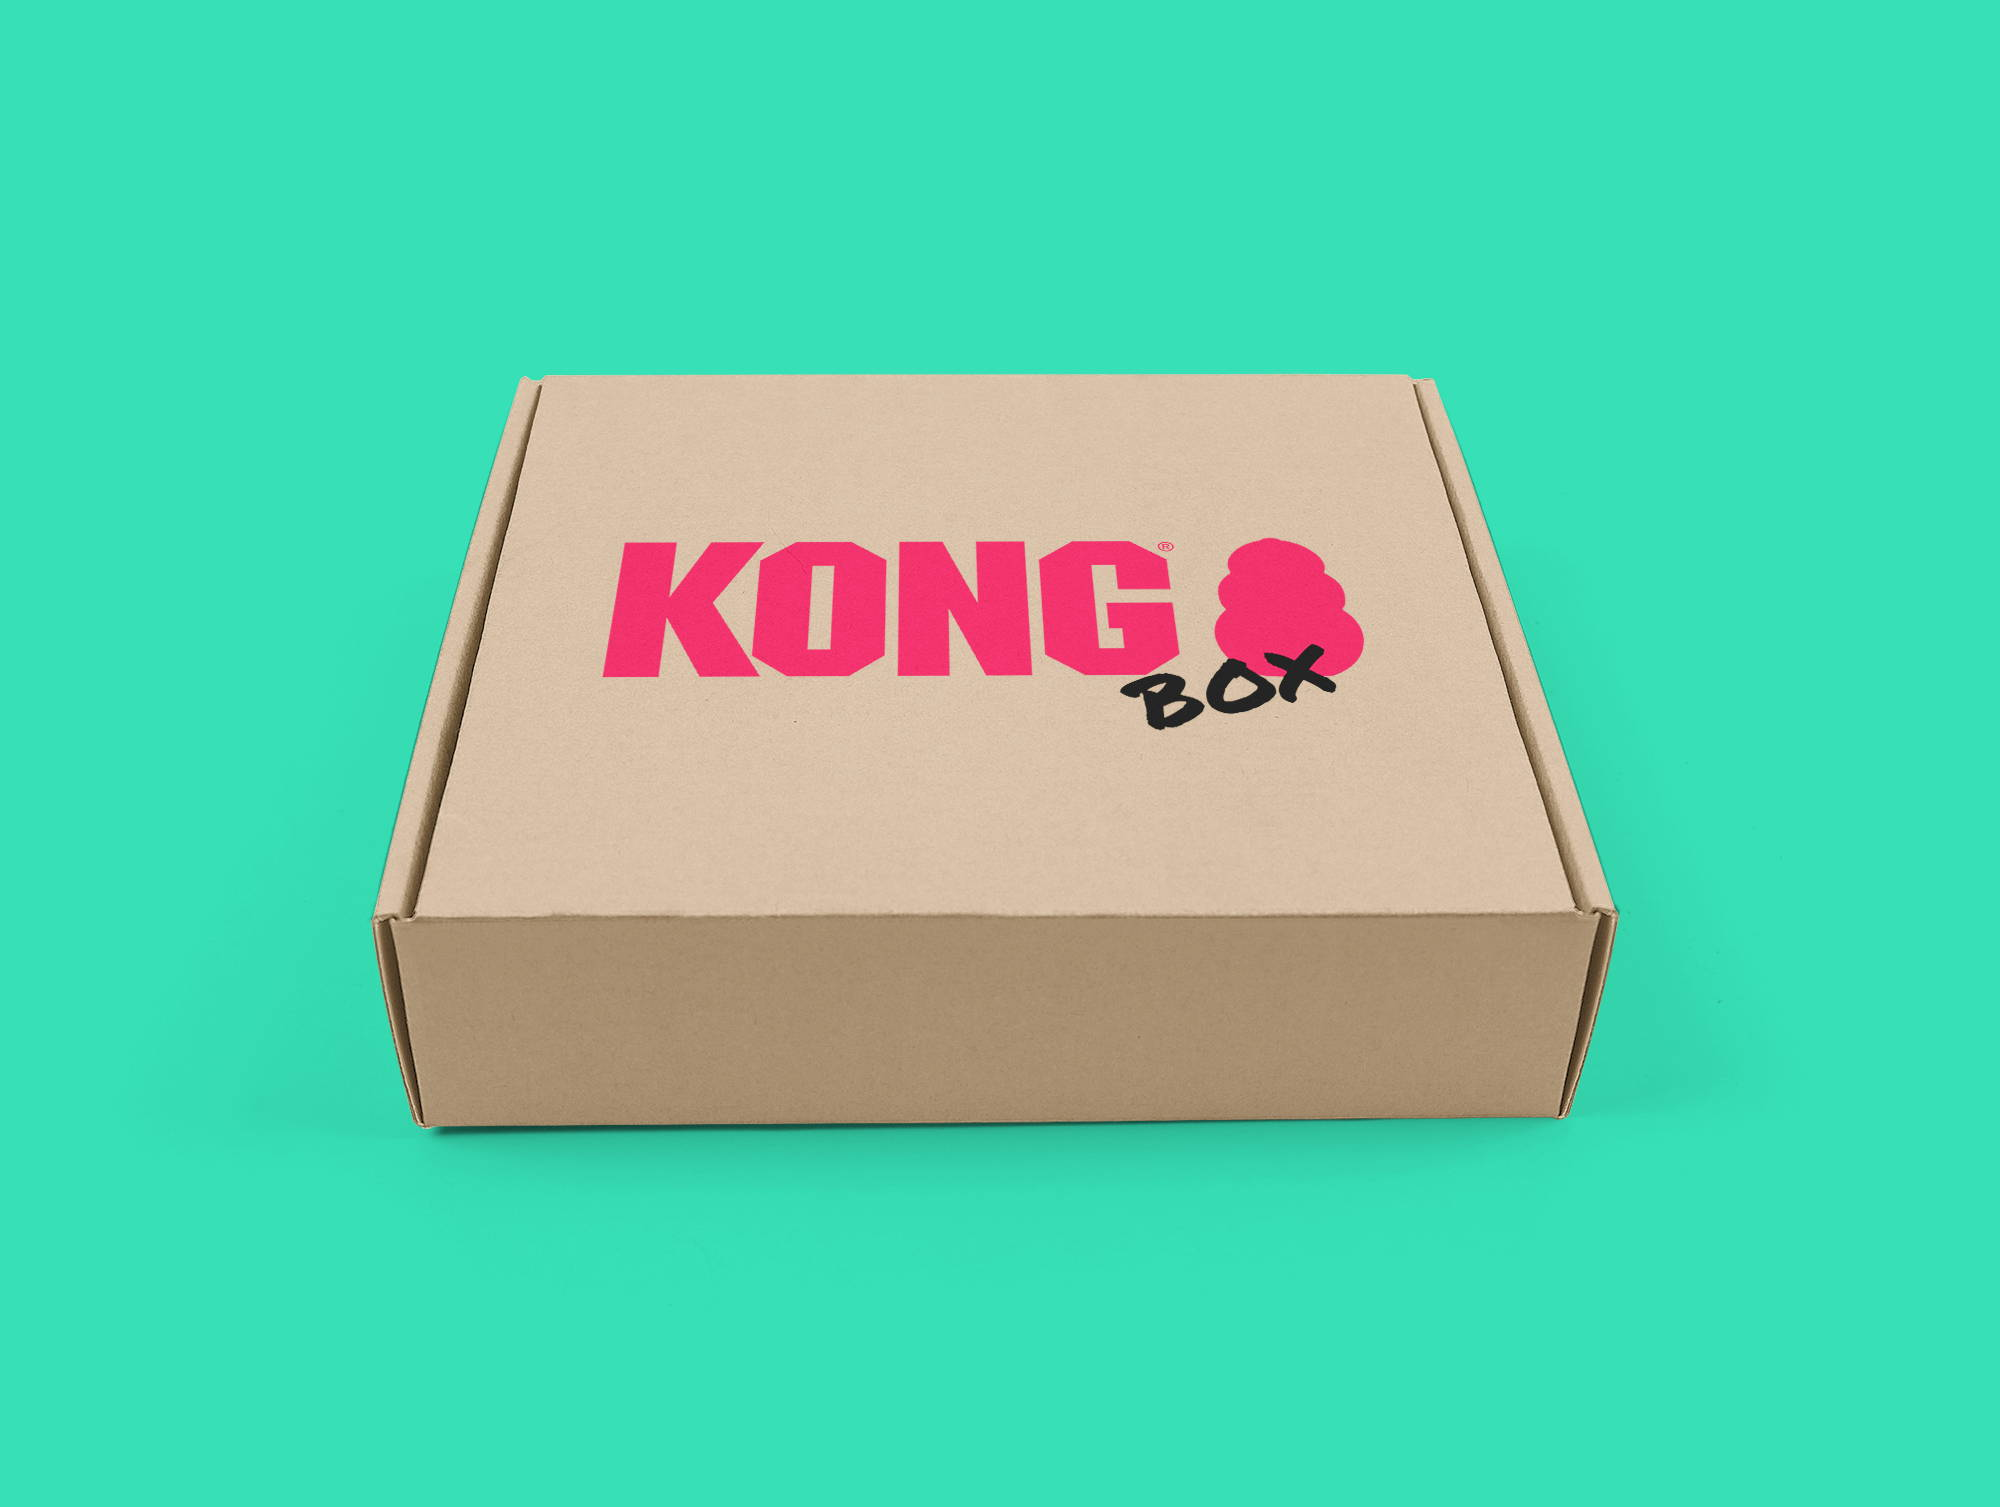 KONG Power Chewers Box